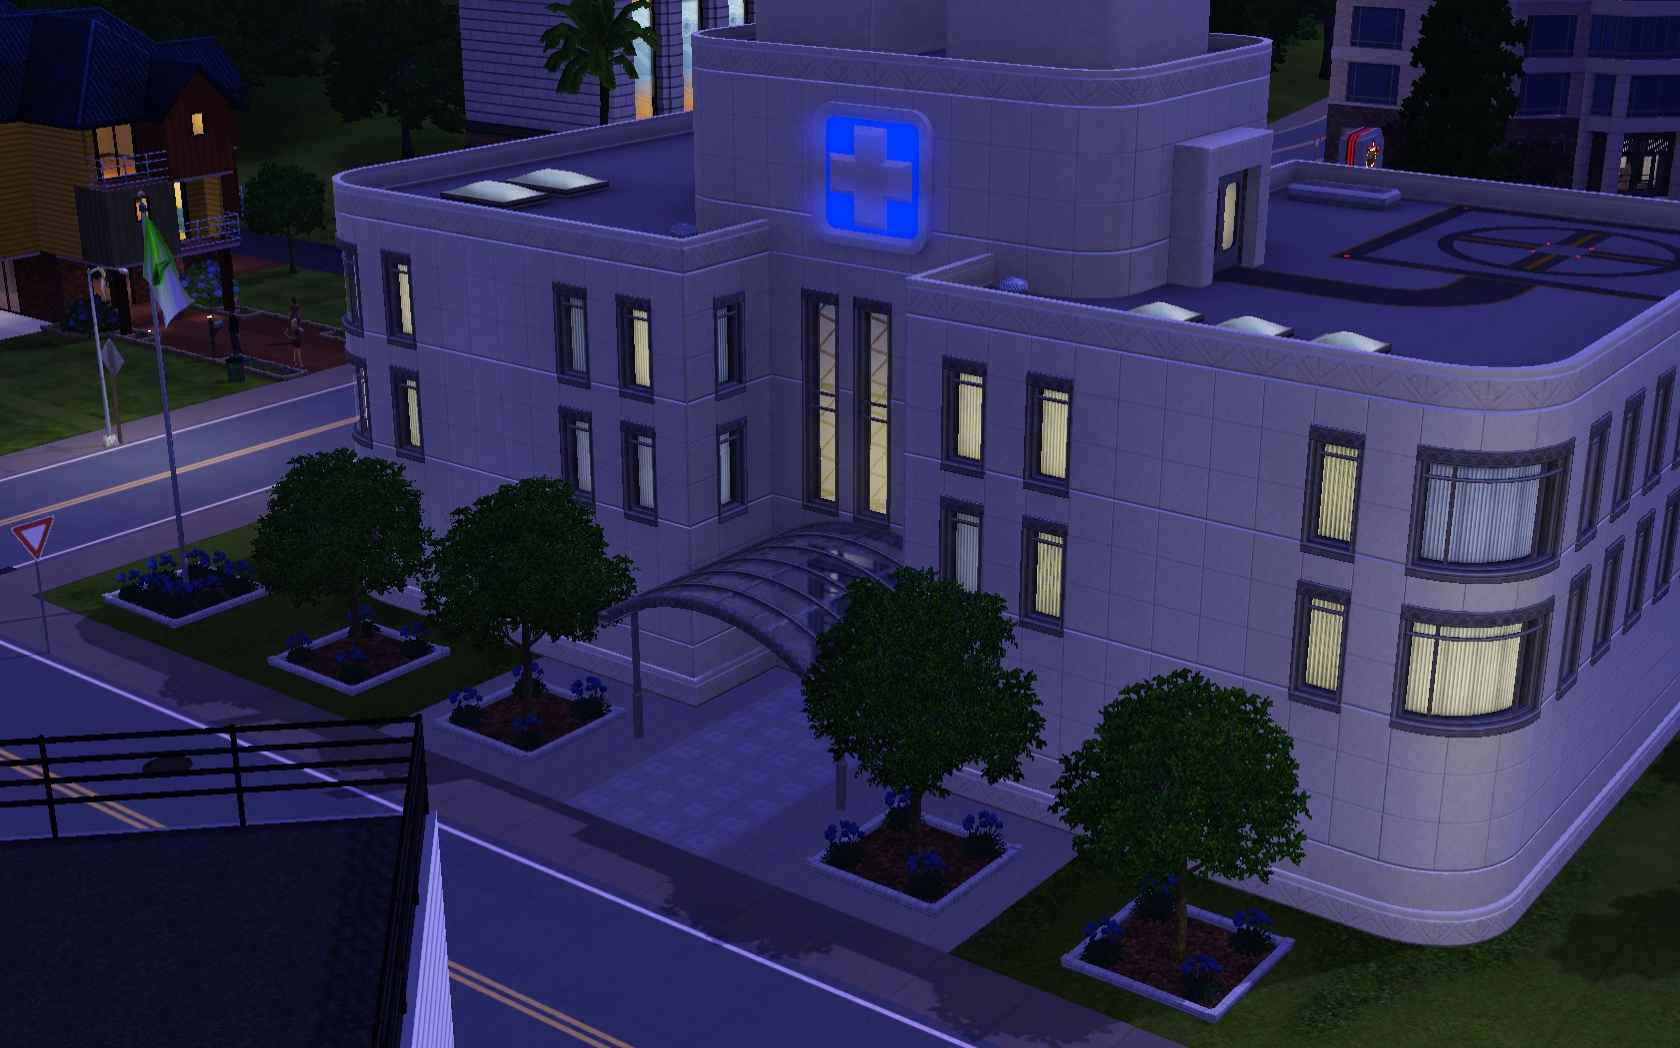 The Hospital In Sims 3 S Sunset Valley